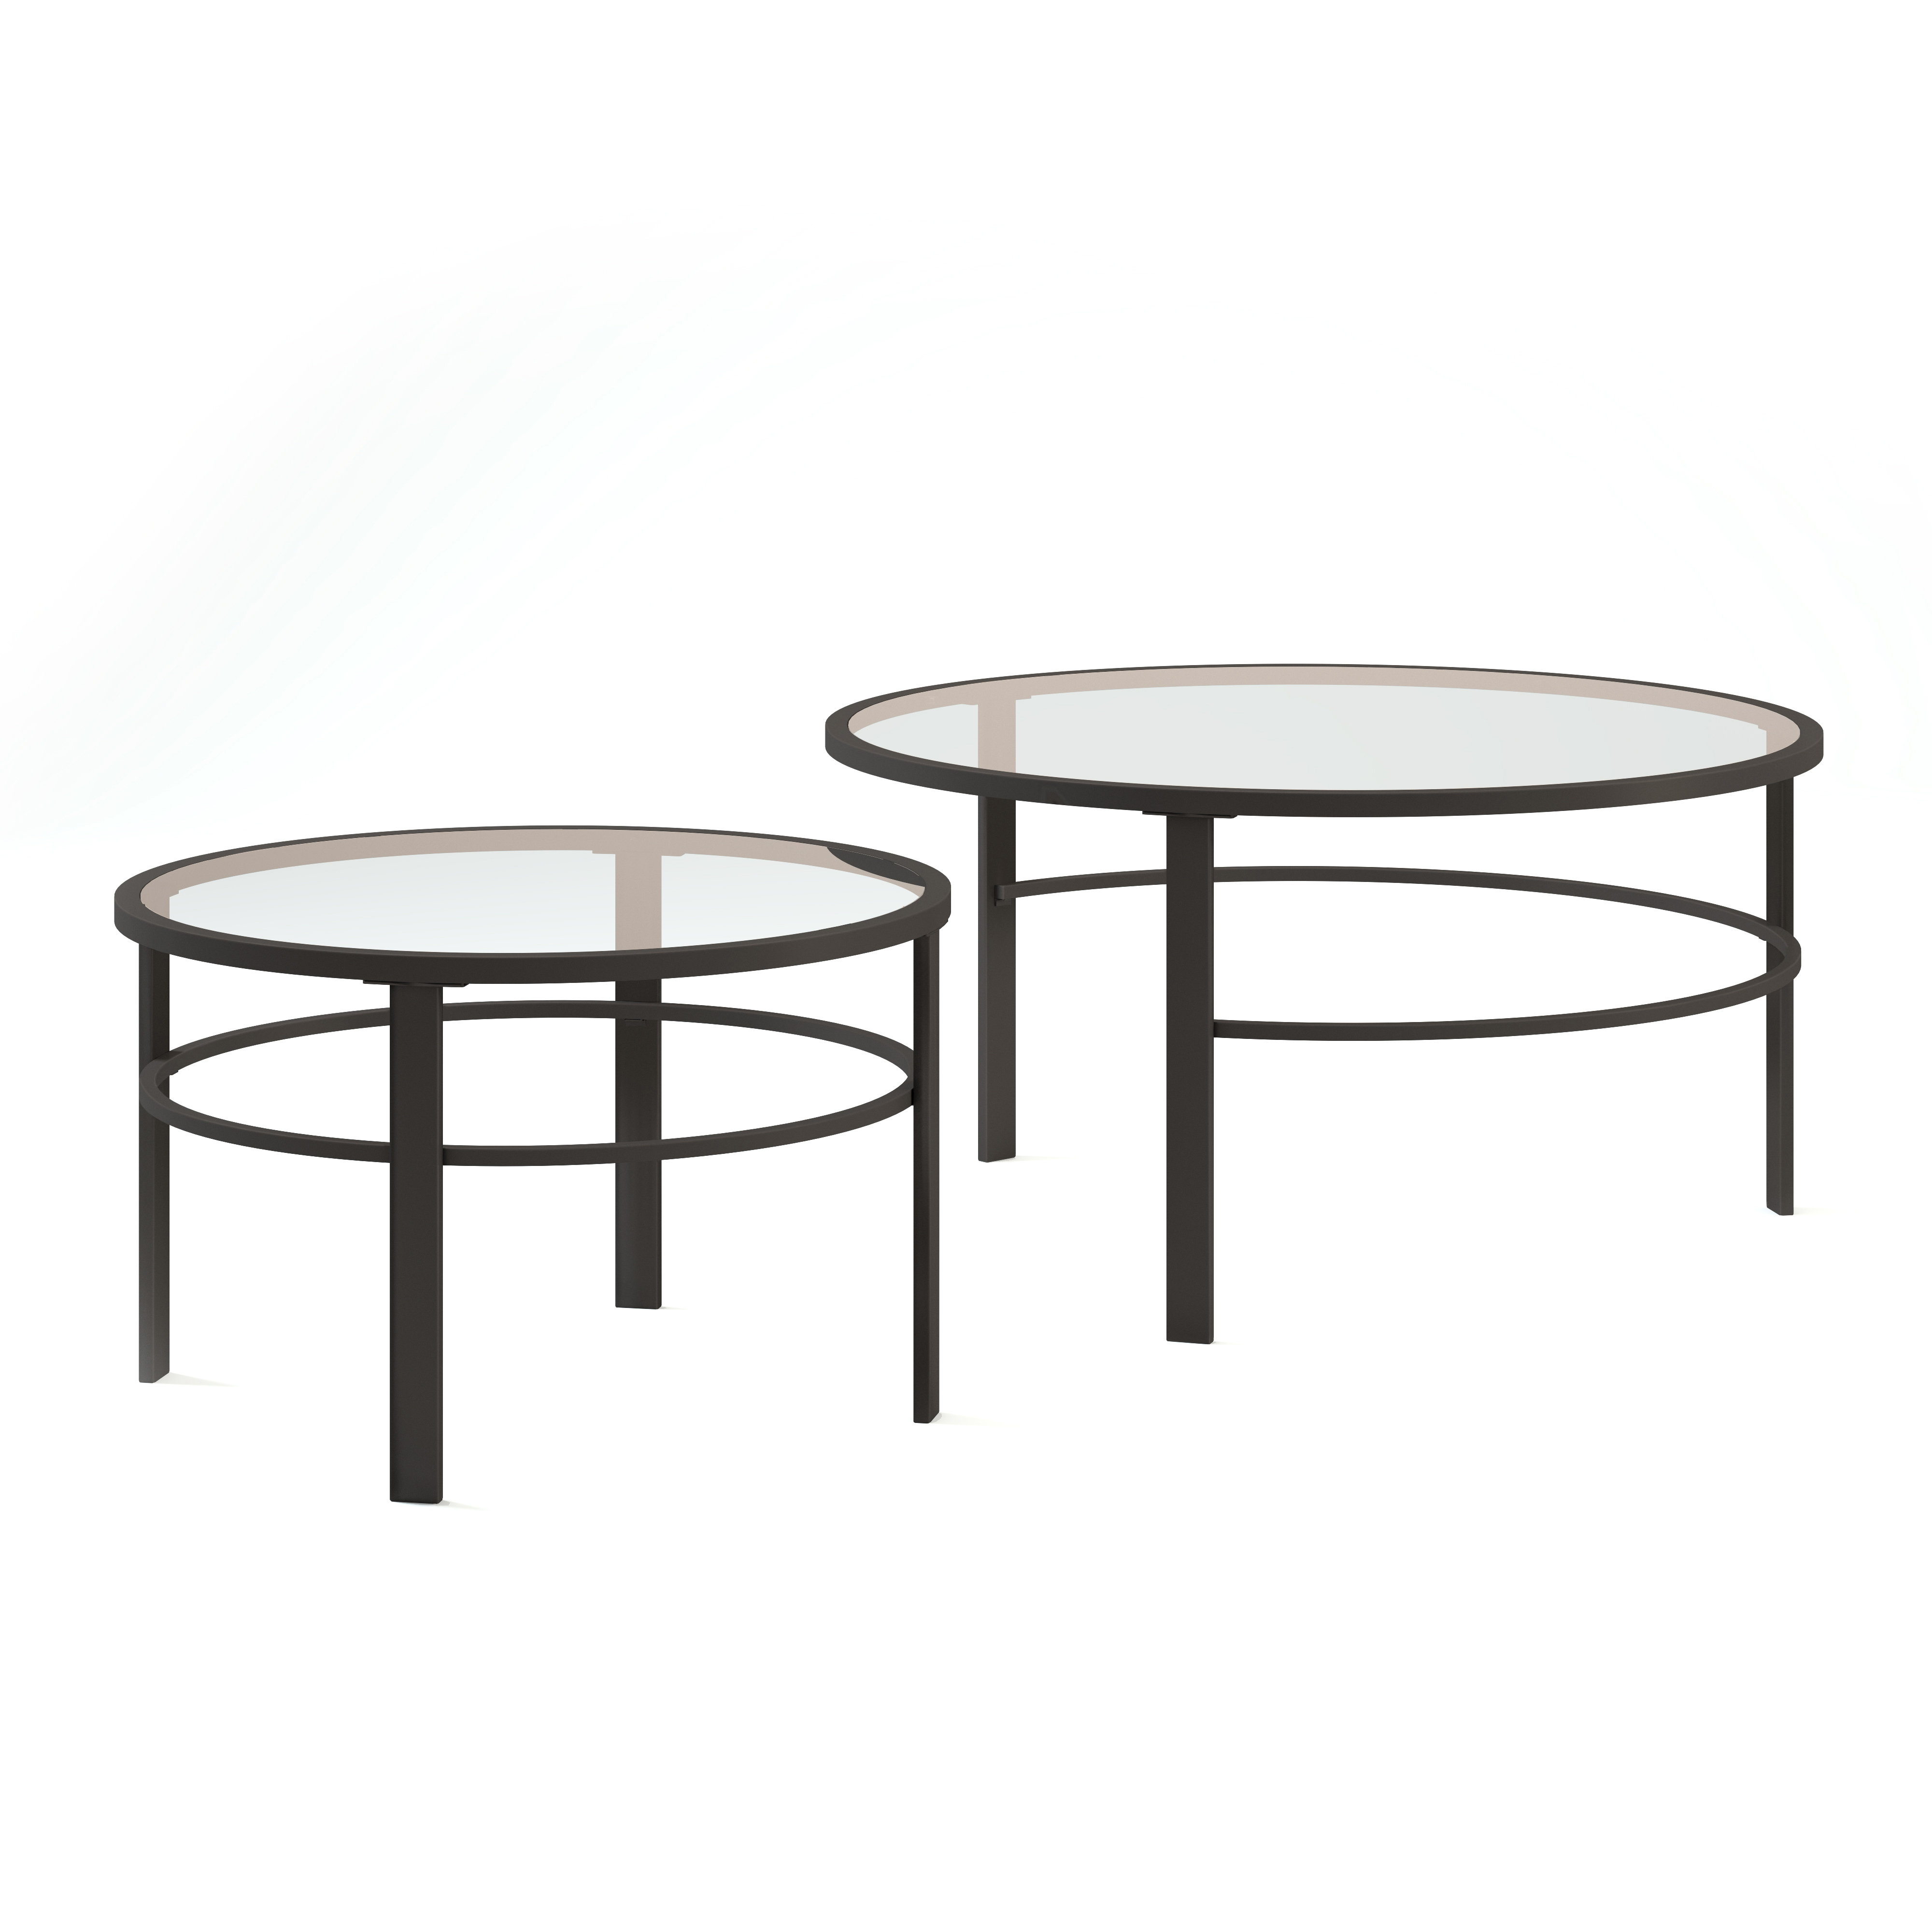 Famous Furniture Of America Crescent Dark Cherry Glass Top Oval Coffee Tables Within Modern & Contemporary Small Bunching Coffee Tables (View 6 of 20)